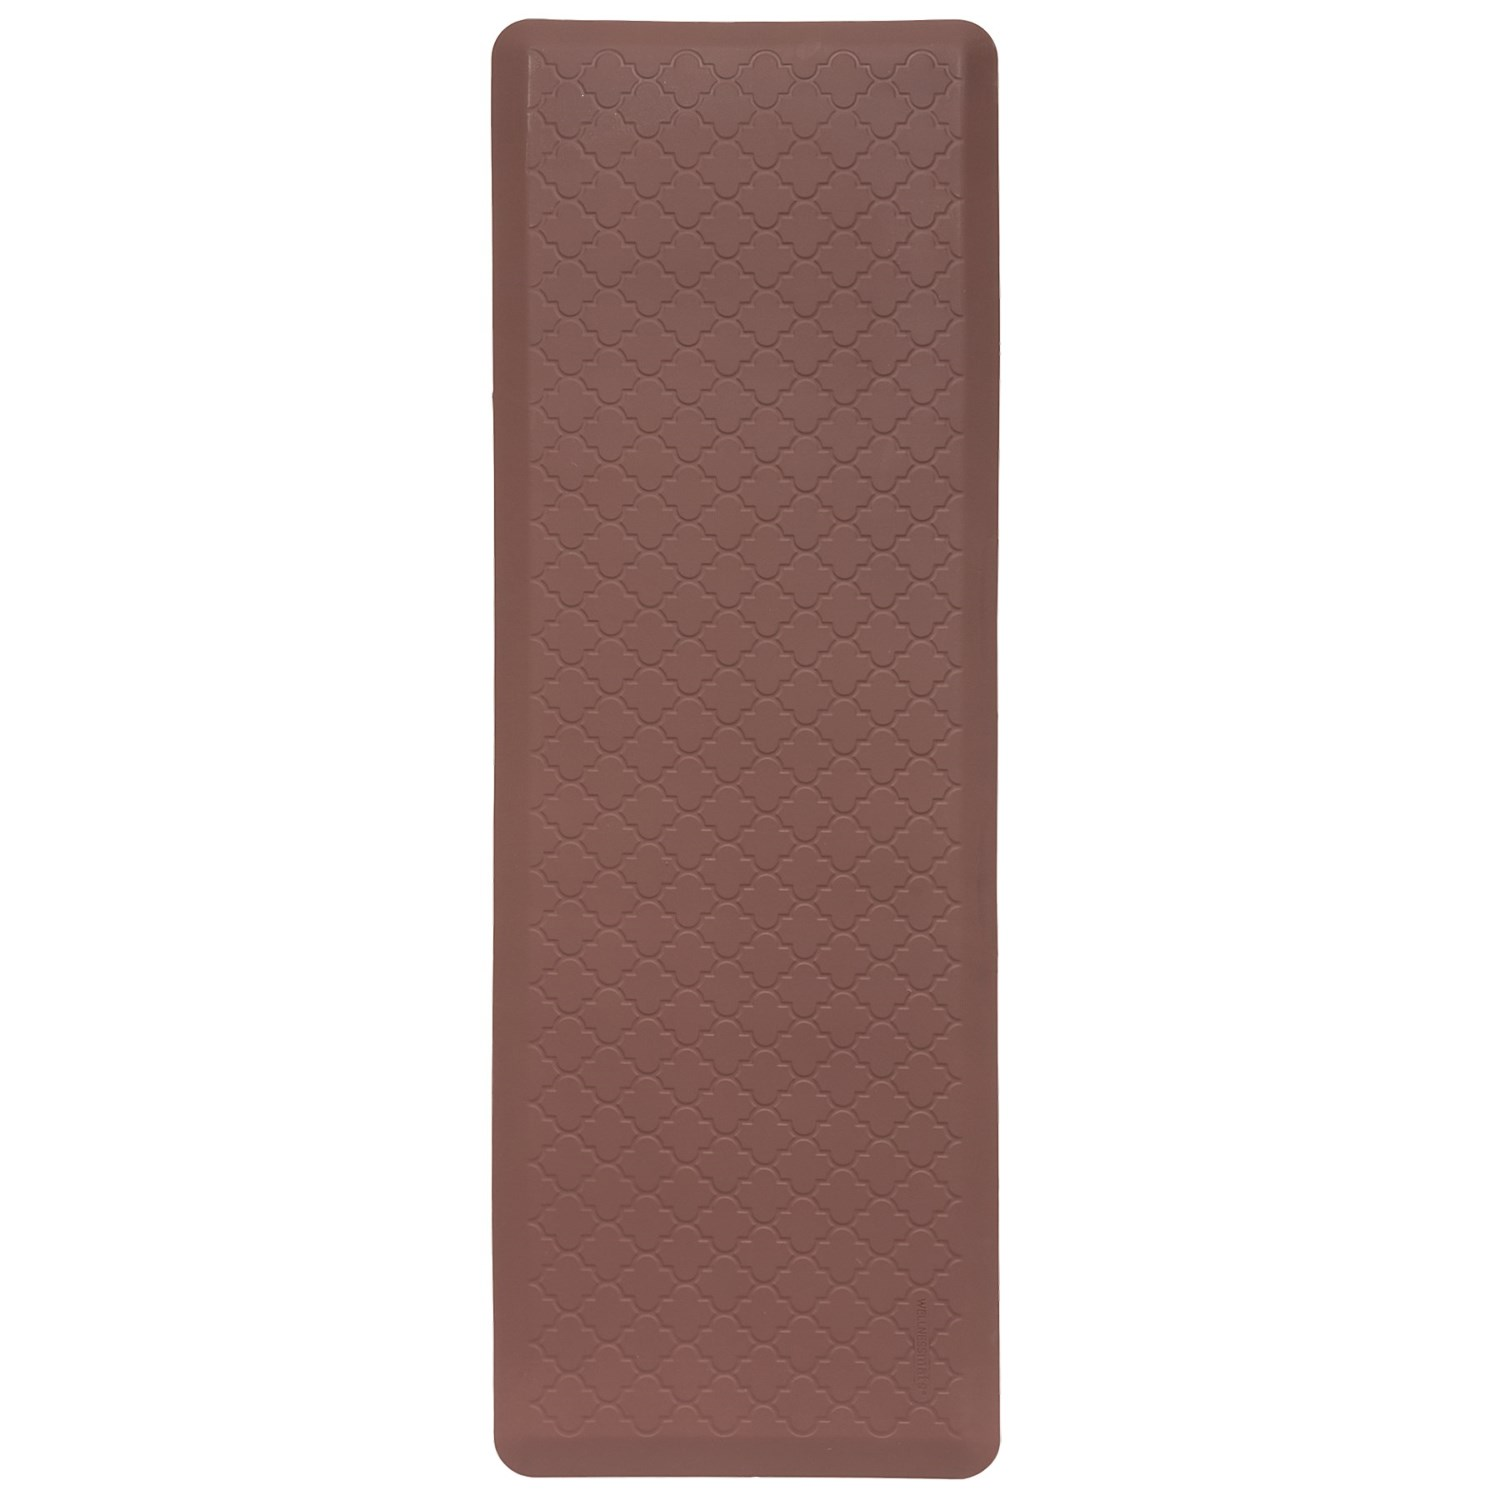 kitchen fatigue mats ideas for wellnessmats anti mat 6x2 save 37